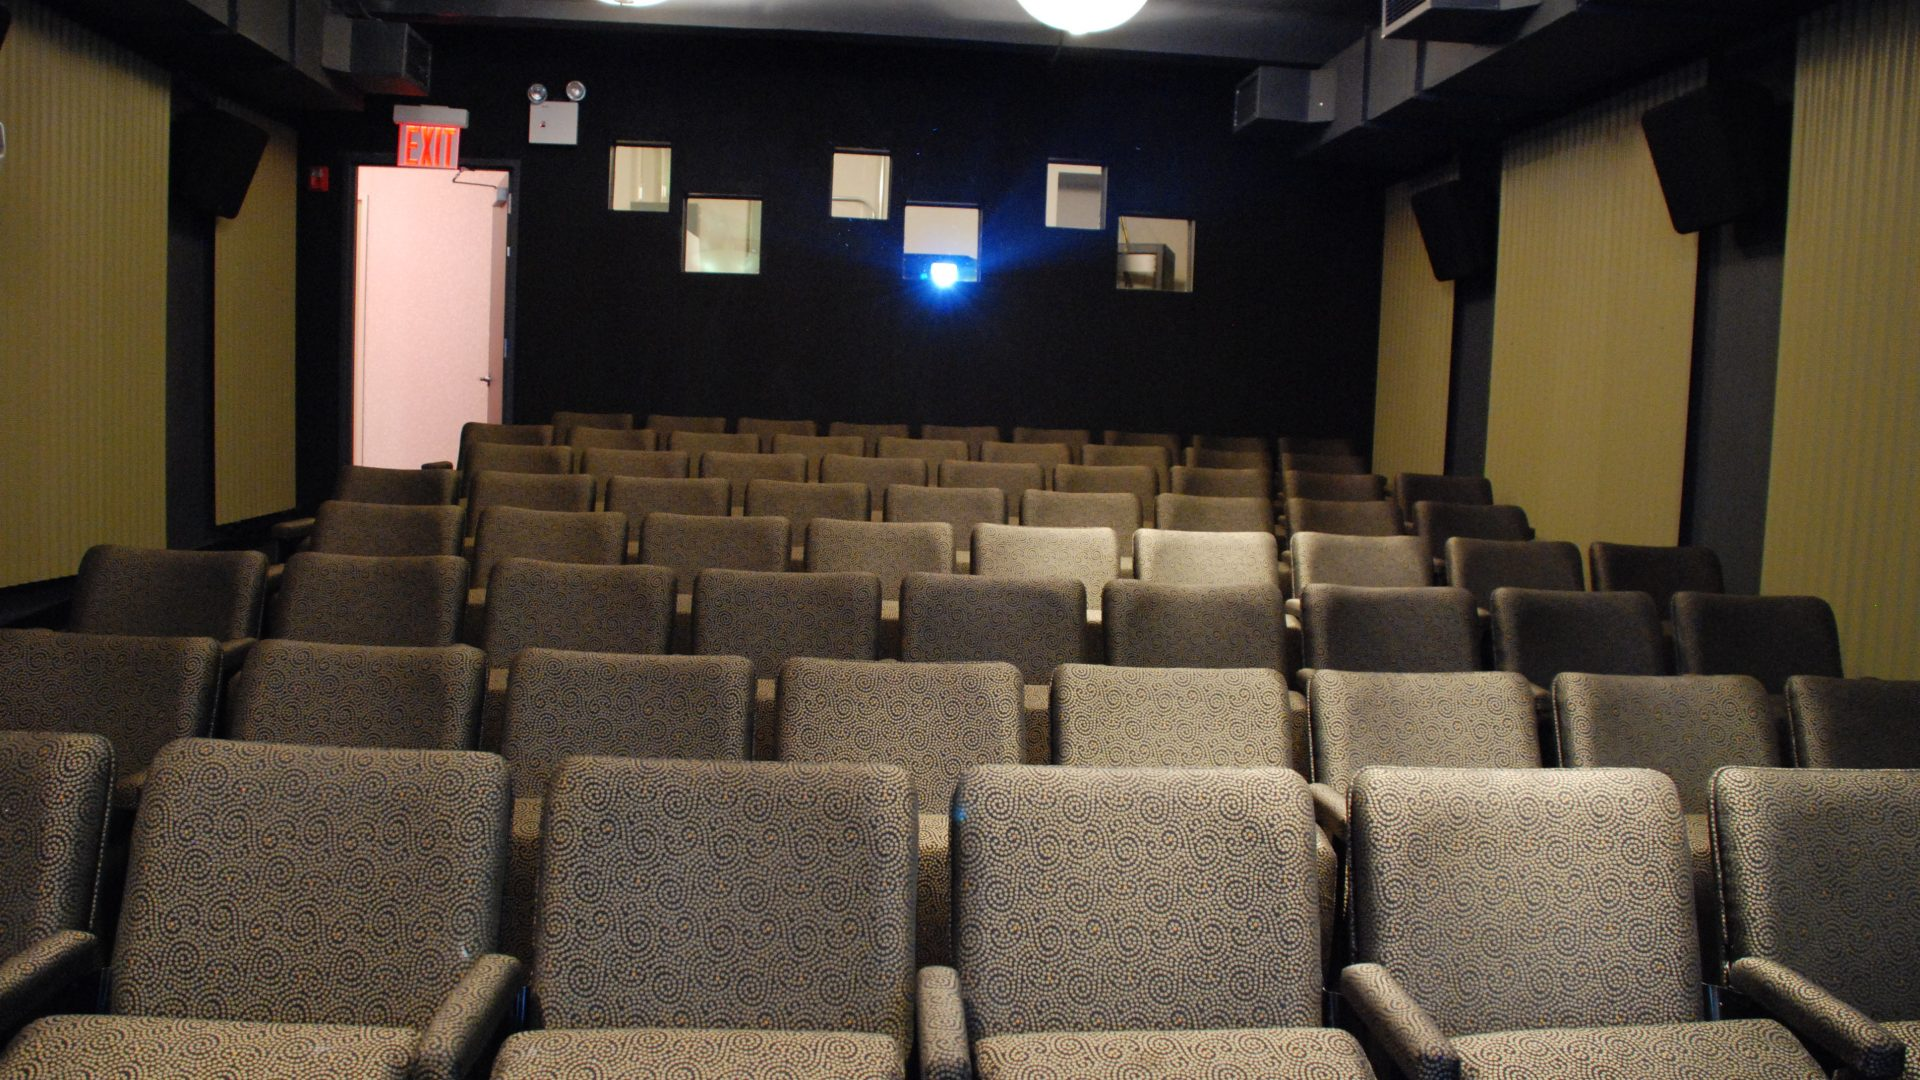 Macaulay Screening Room